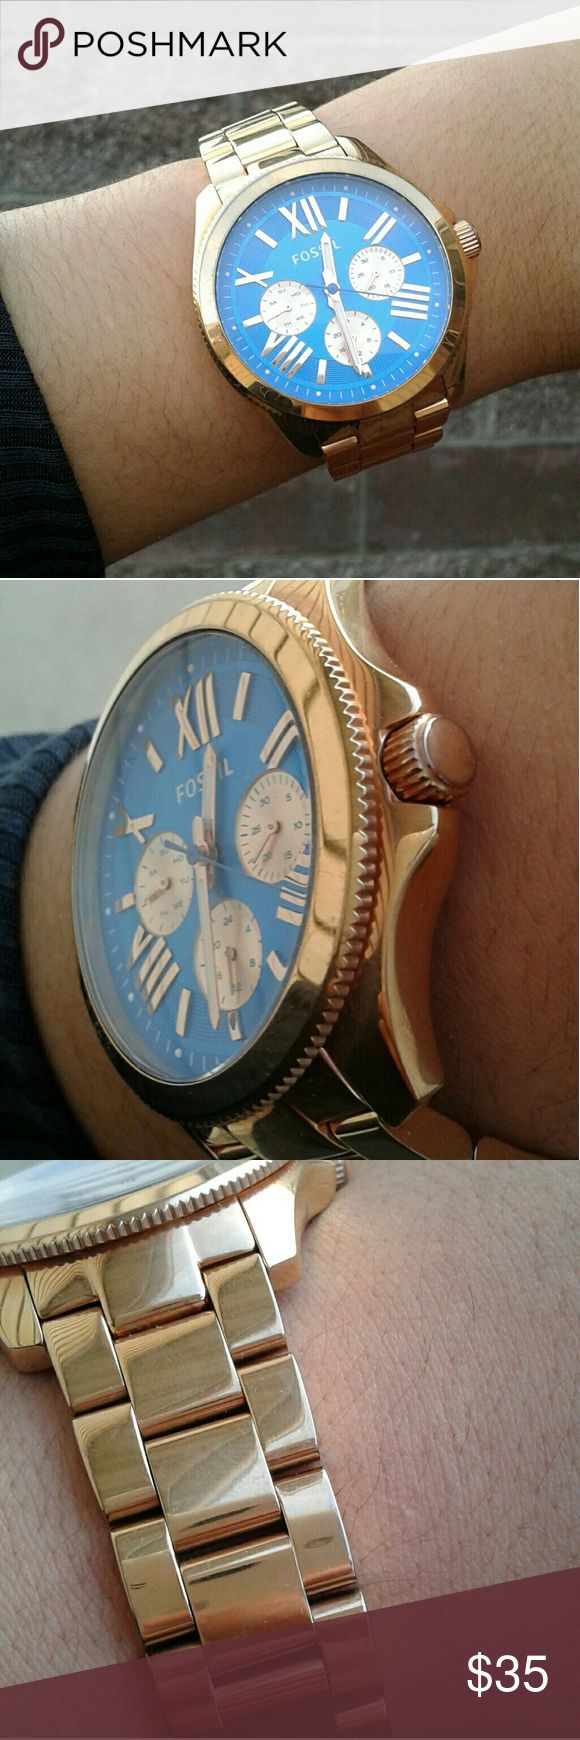 """FOSSIL watch! ❤ selling AS IS! Gold watch with beautiful blue face. This watch will need a battery, it was ticking great before it needed one. There is wear on the closing latch (see last pic) I am selling this watch in as is condition. Please do not ask any """"have you tried..."""" questions because the answer will be no. I am leaving repairs and condition improvements to the discretion of the buyer. This is reflected in the list price. I am still open to offers and other questions :) Fossil…"""